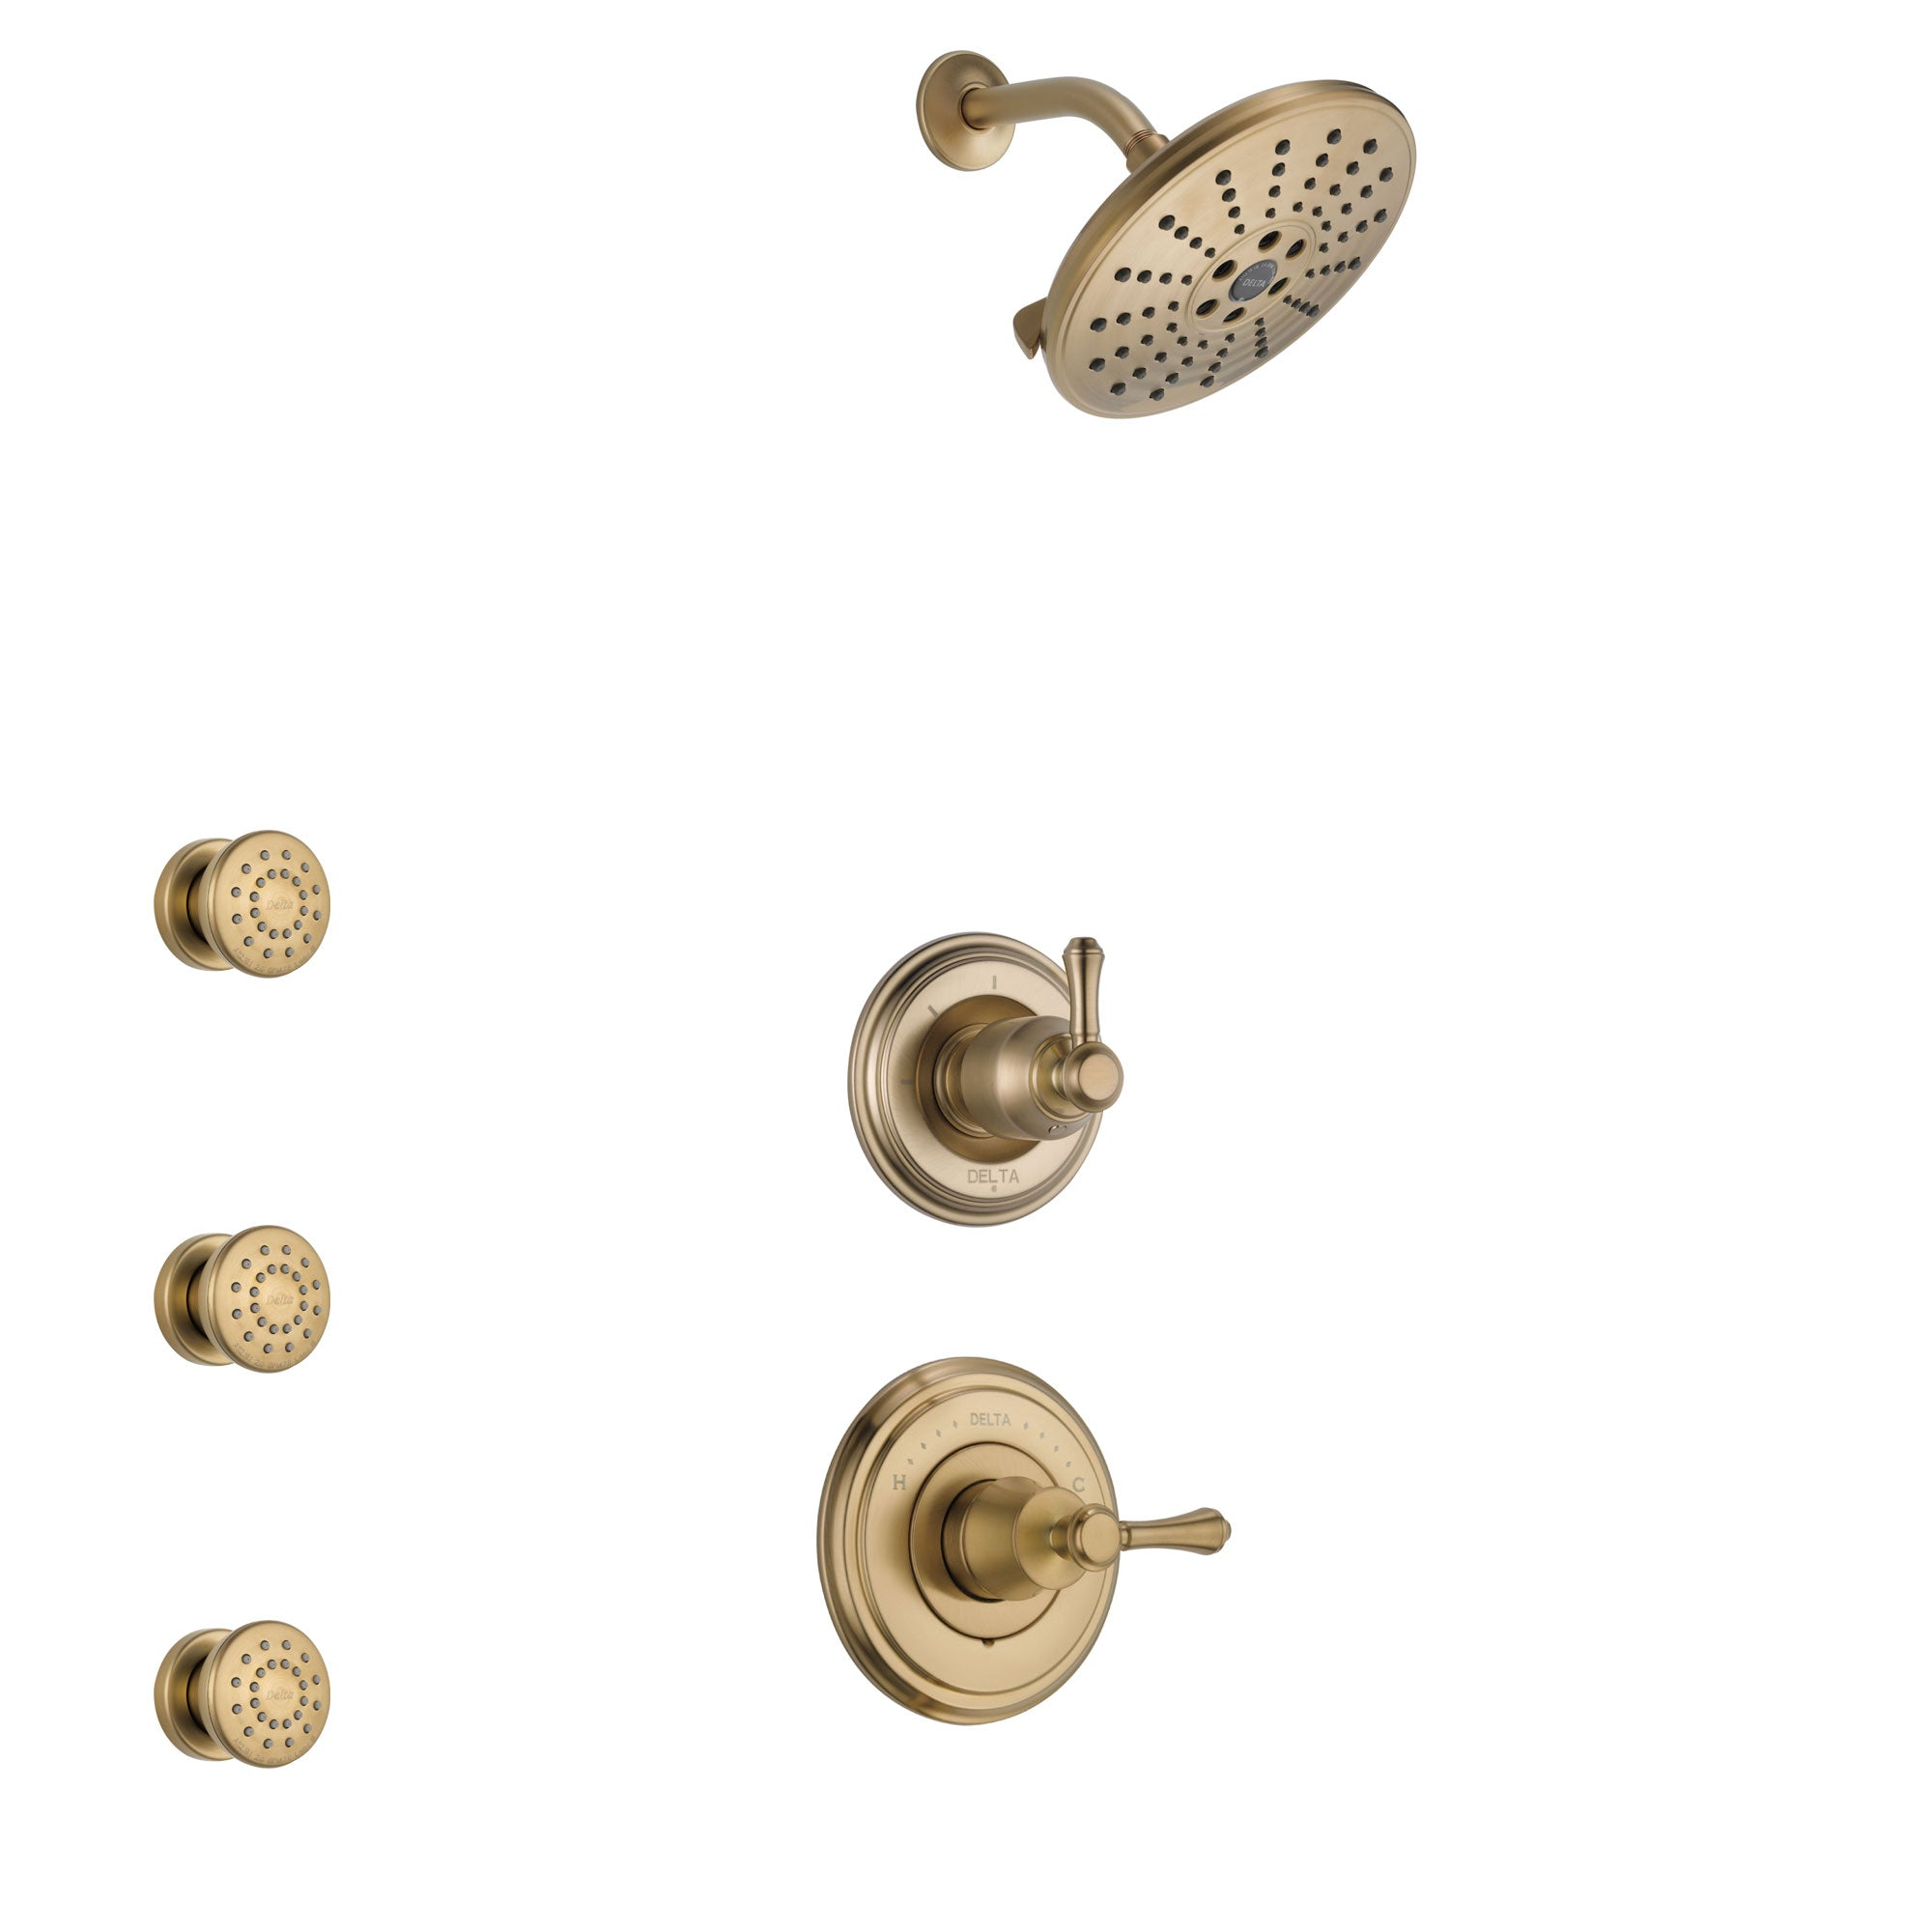 Delta Cassidy Champagne Bronze Finish Shower System with Control Handle, 3-Setting Diverter, Showerhead, and 3 Body Sprays SS14972CZ6